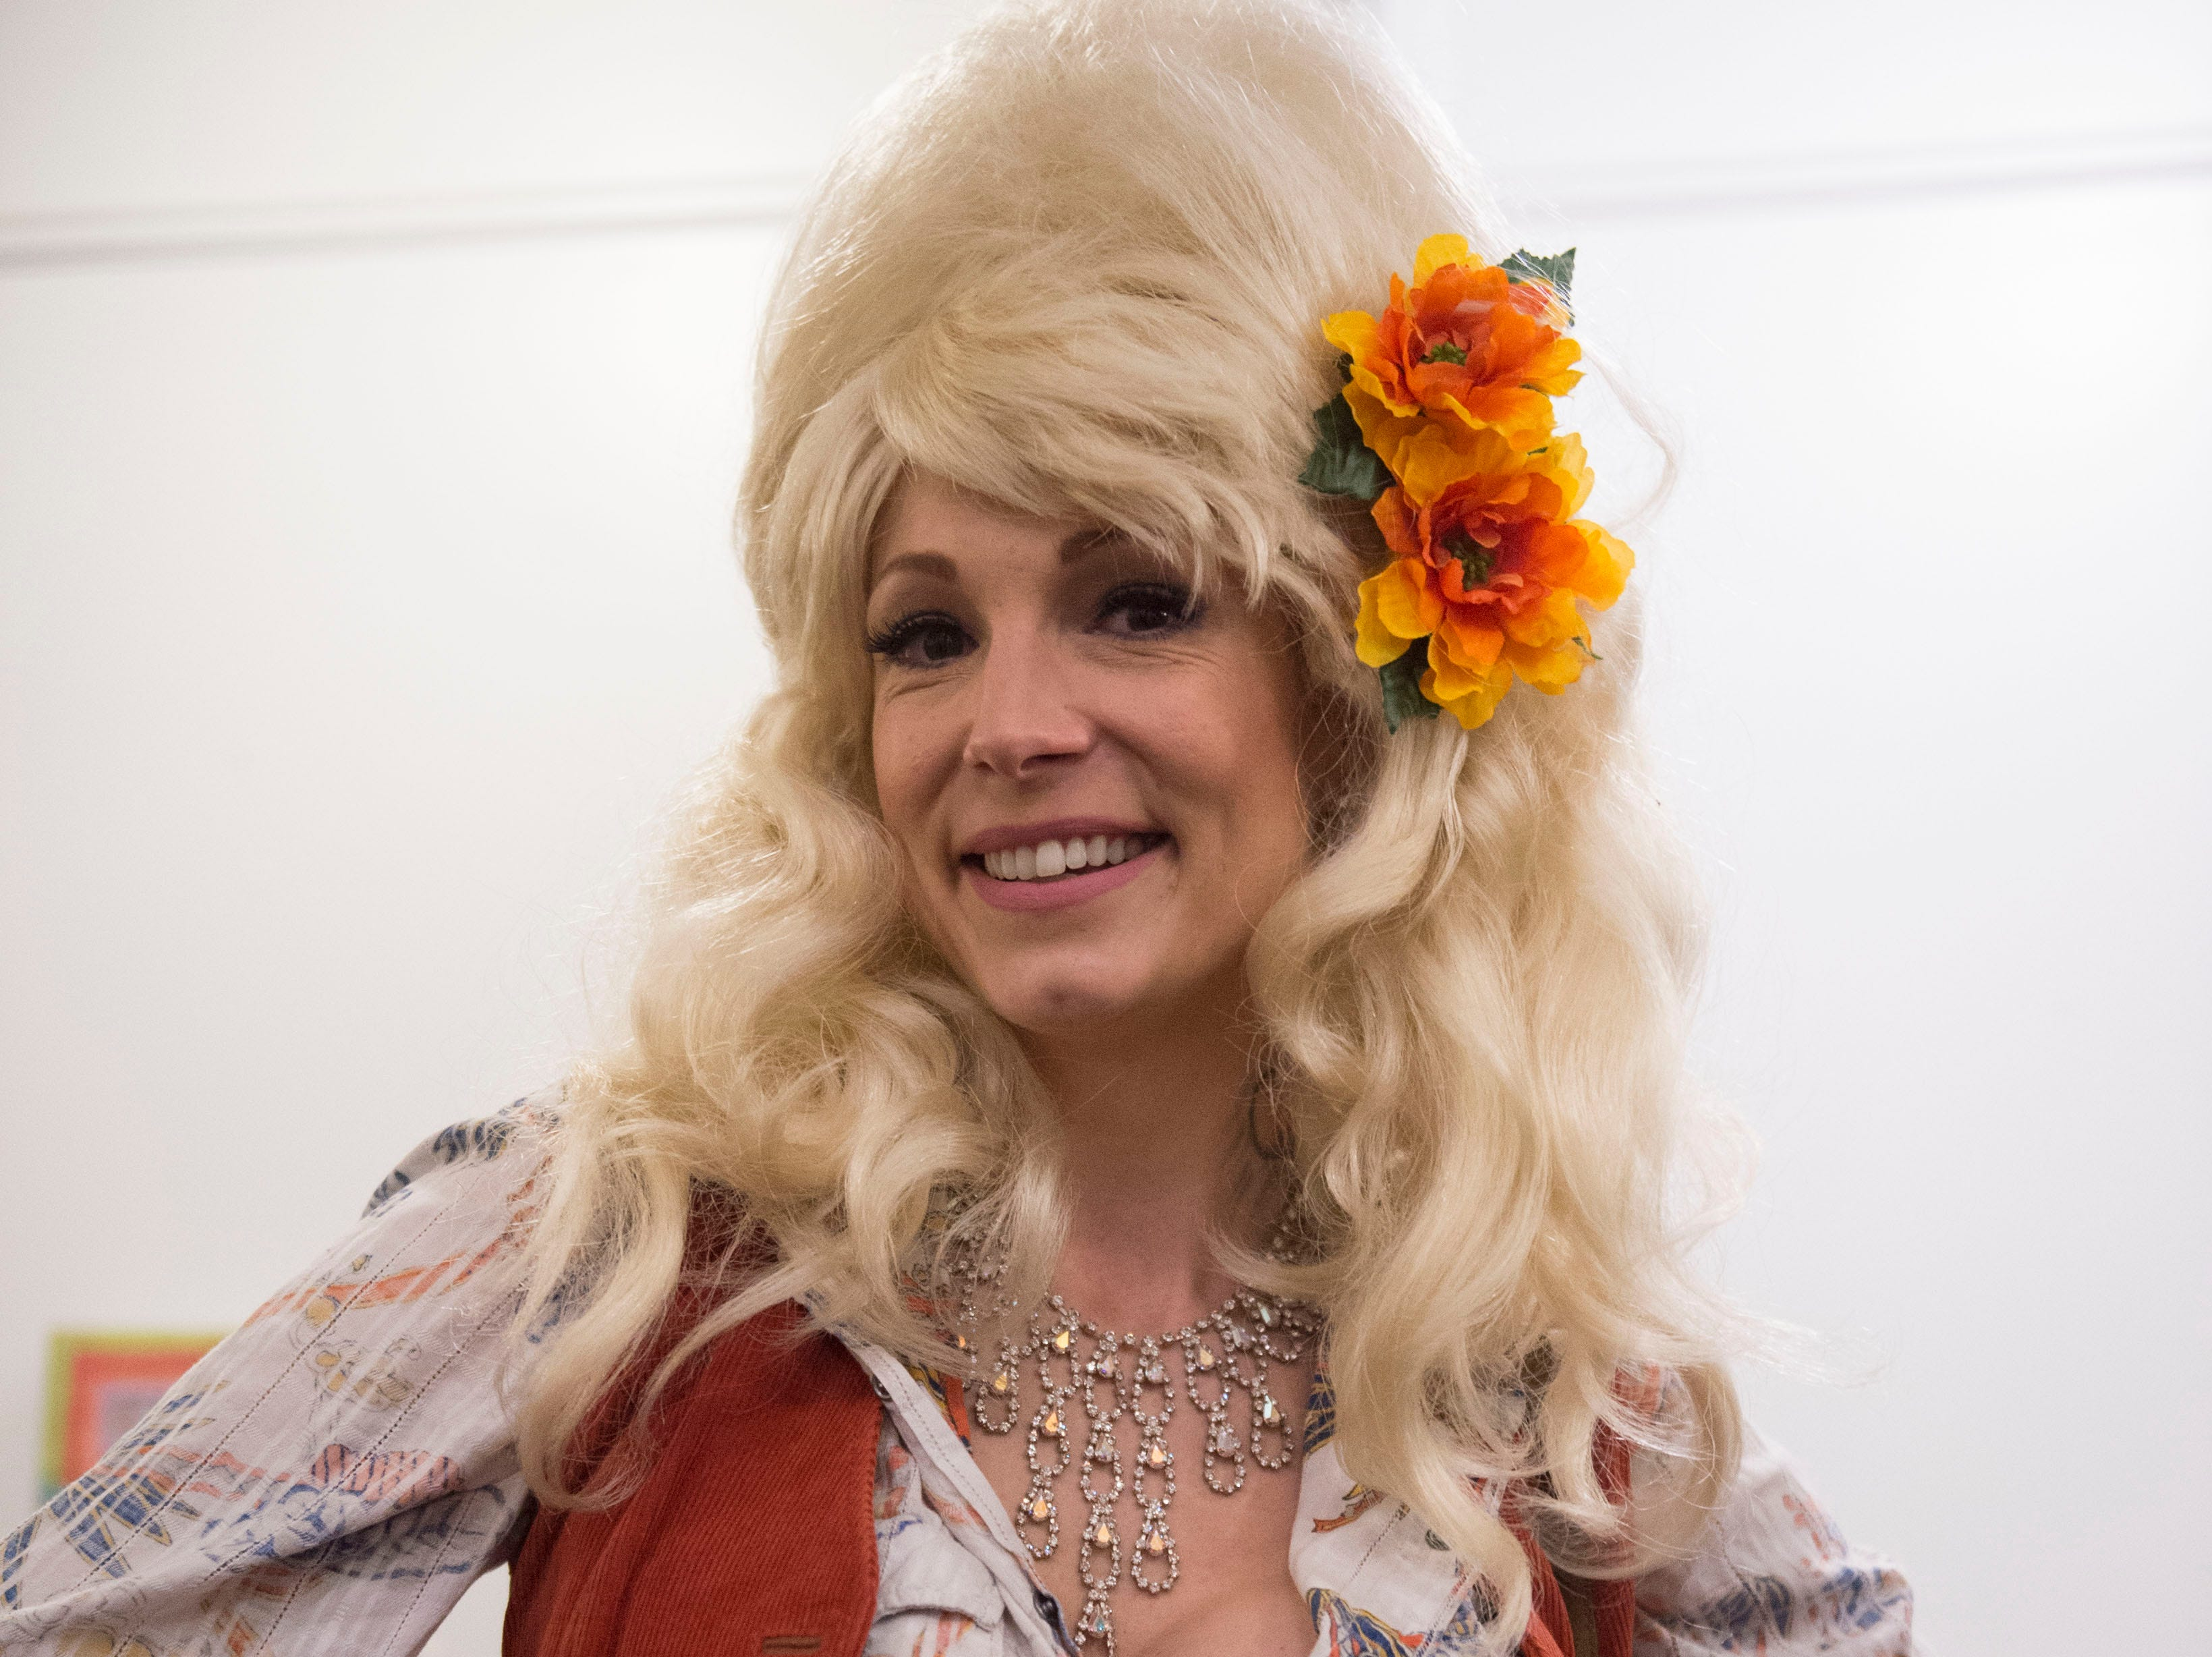 """Artist Meghan """"Bunny' Cunningham dressed as Dolly Parton served as a panel judge for the Dolly Parton look-a-like contest, the central event of the 4th annual Dolly Should festival in Bay St. Louis. Saturday, Jan. 12, 2019"""